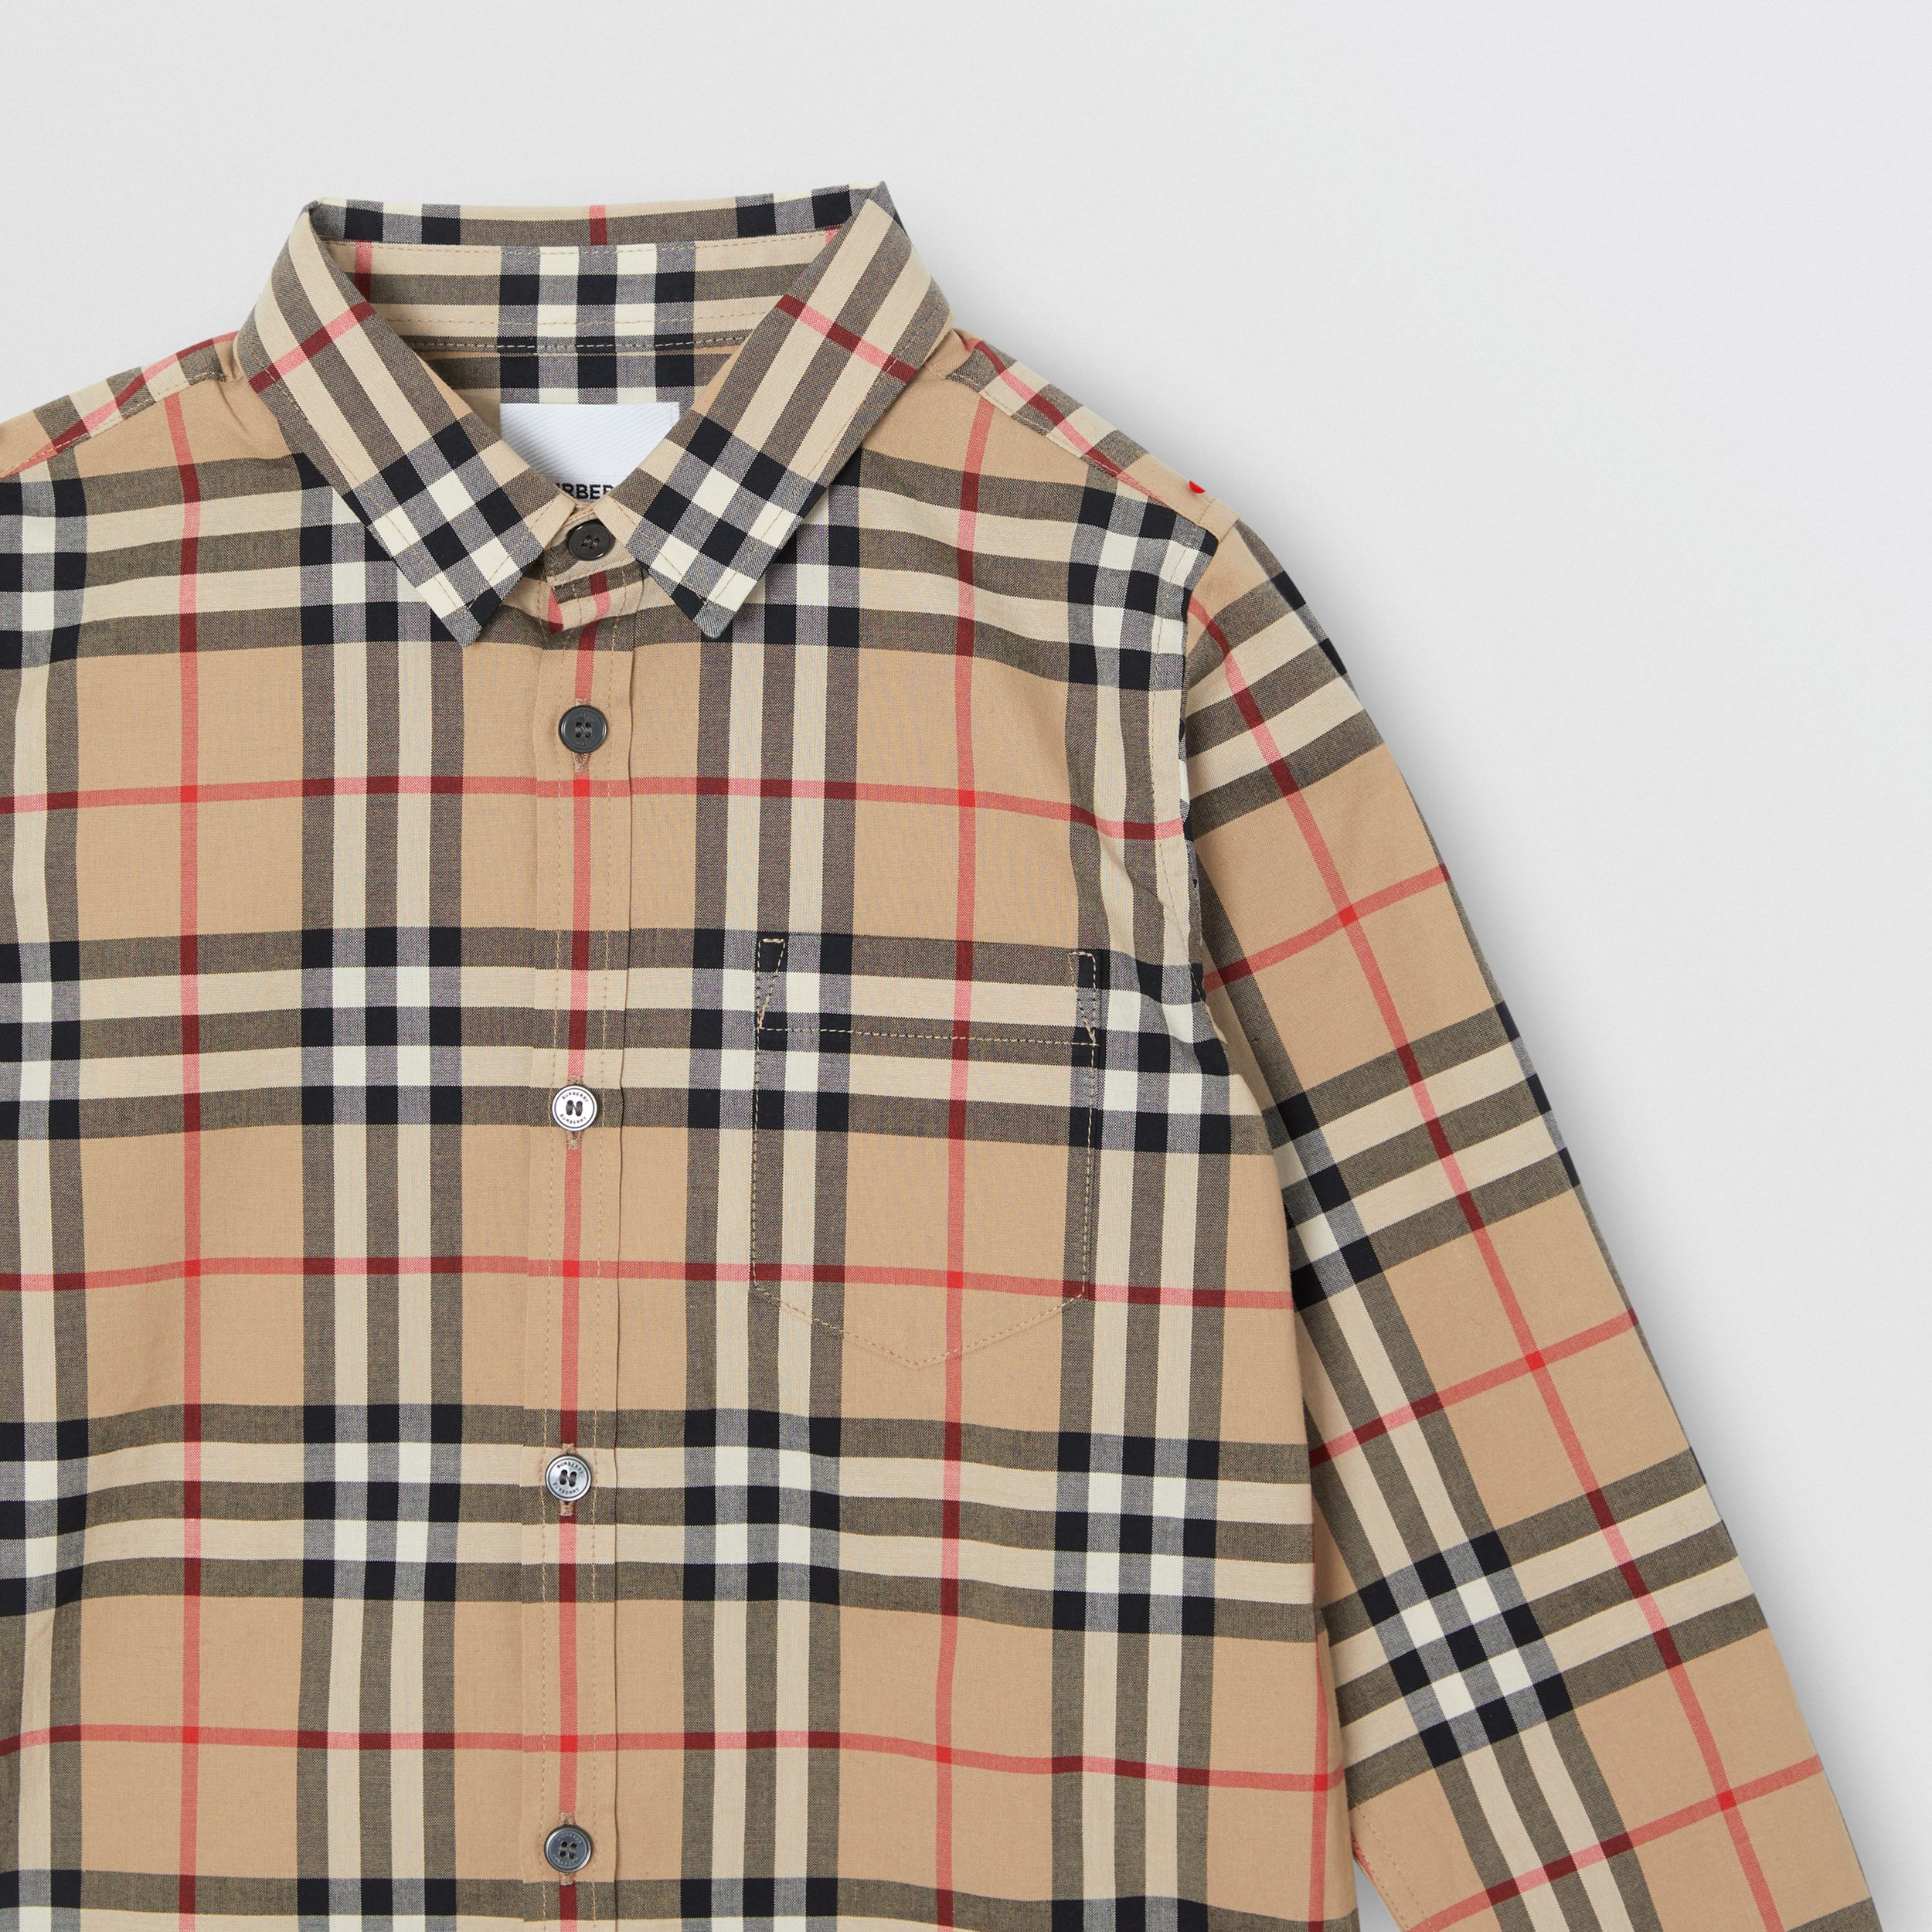 Vintage Check Cotton Poplin Shirt in Archive Beige | Burberry Australia - 4